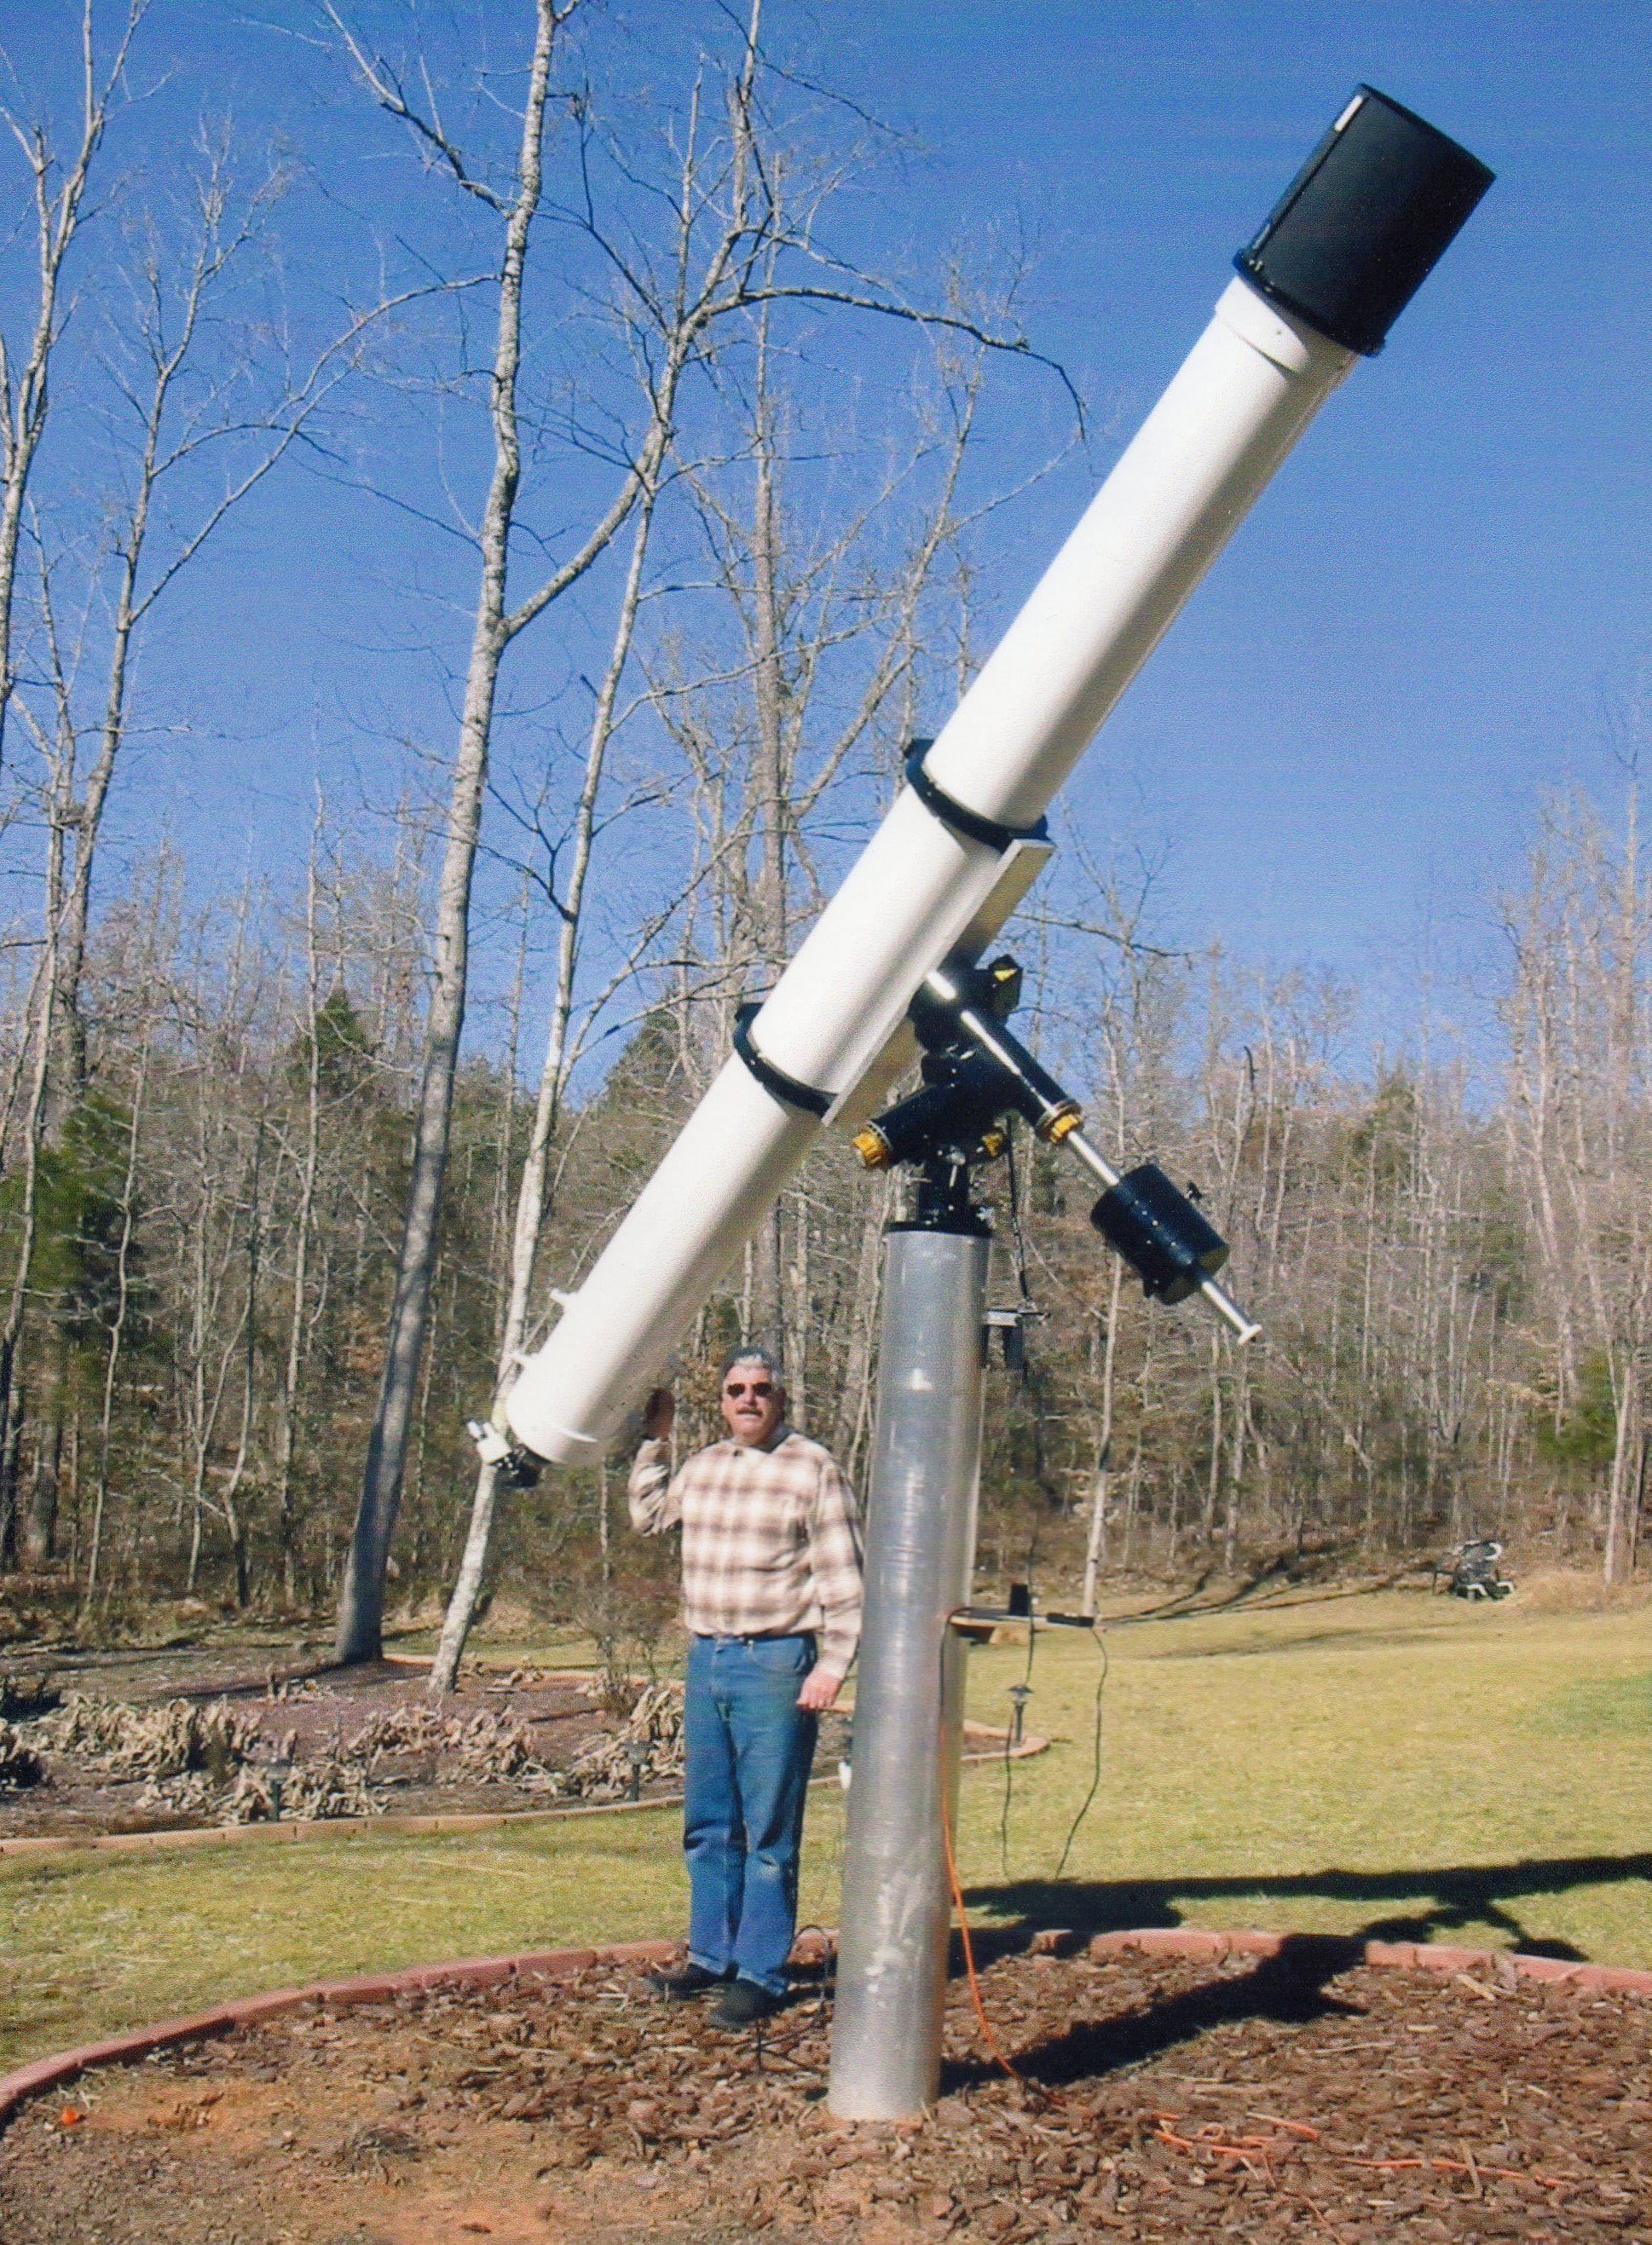 Looking For Telescope For Crisp Views Of Deep Sky Objects